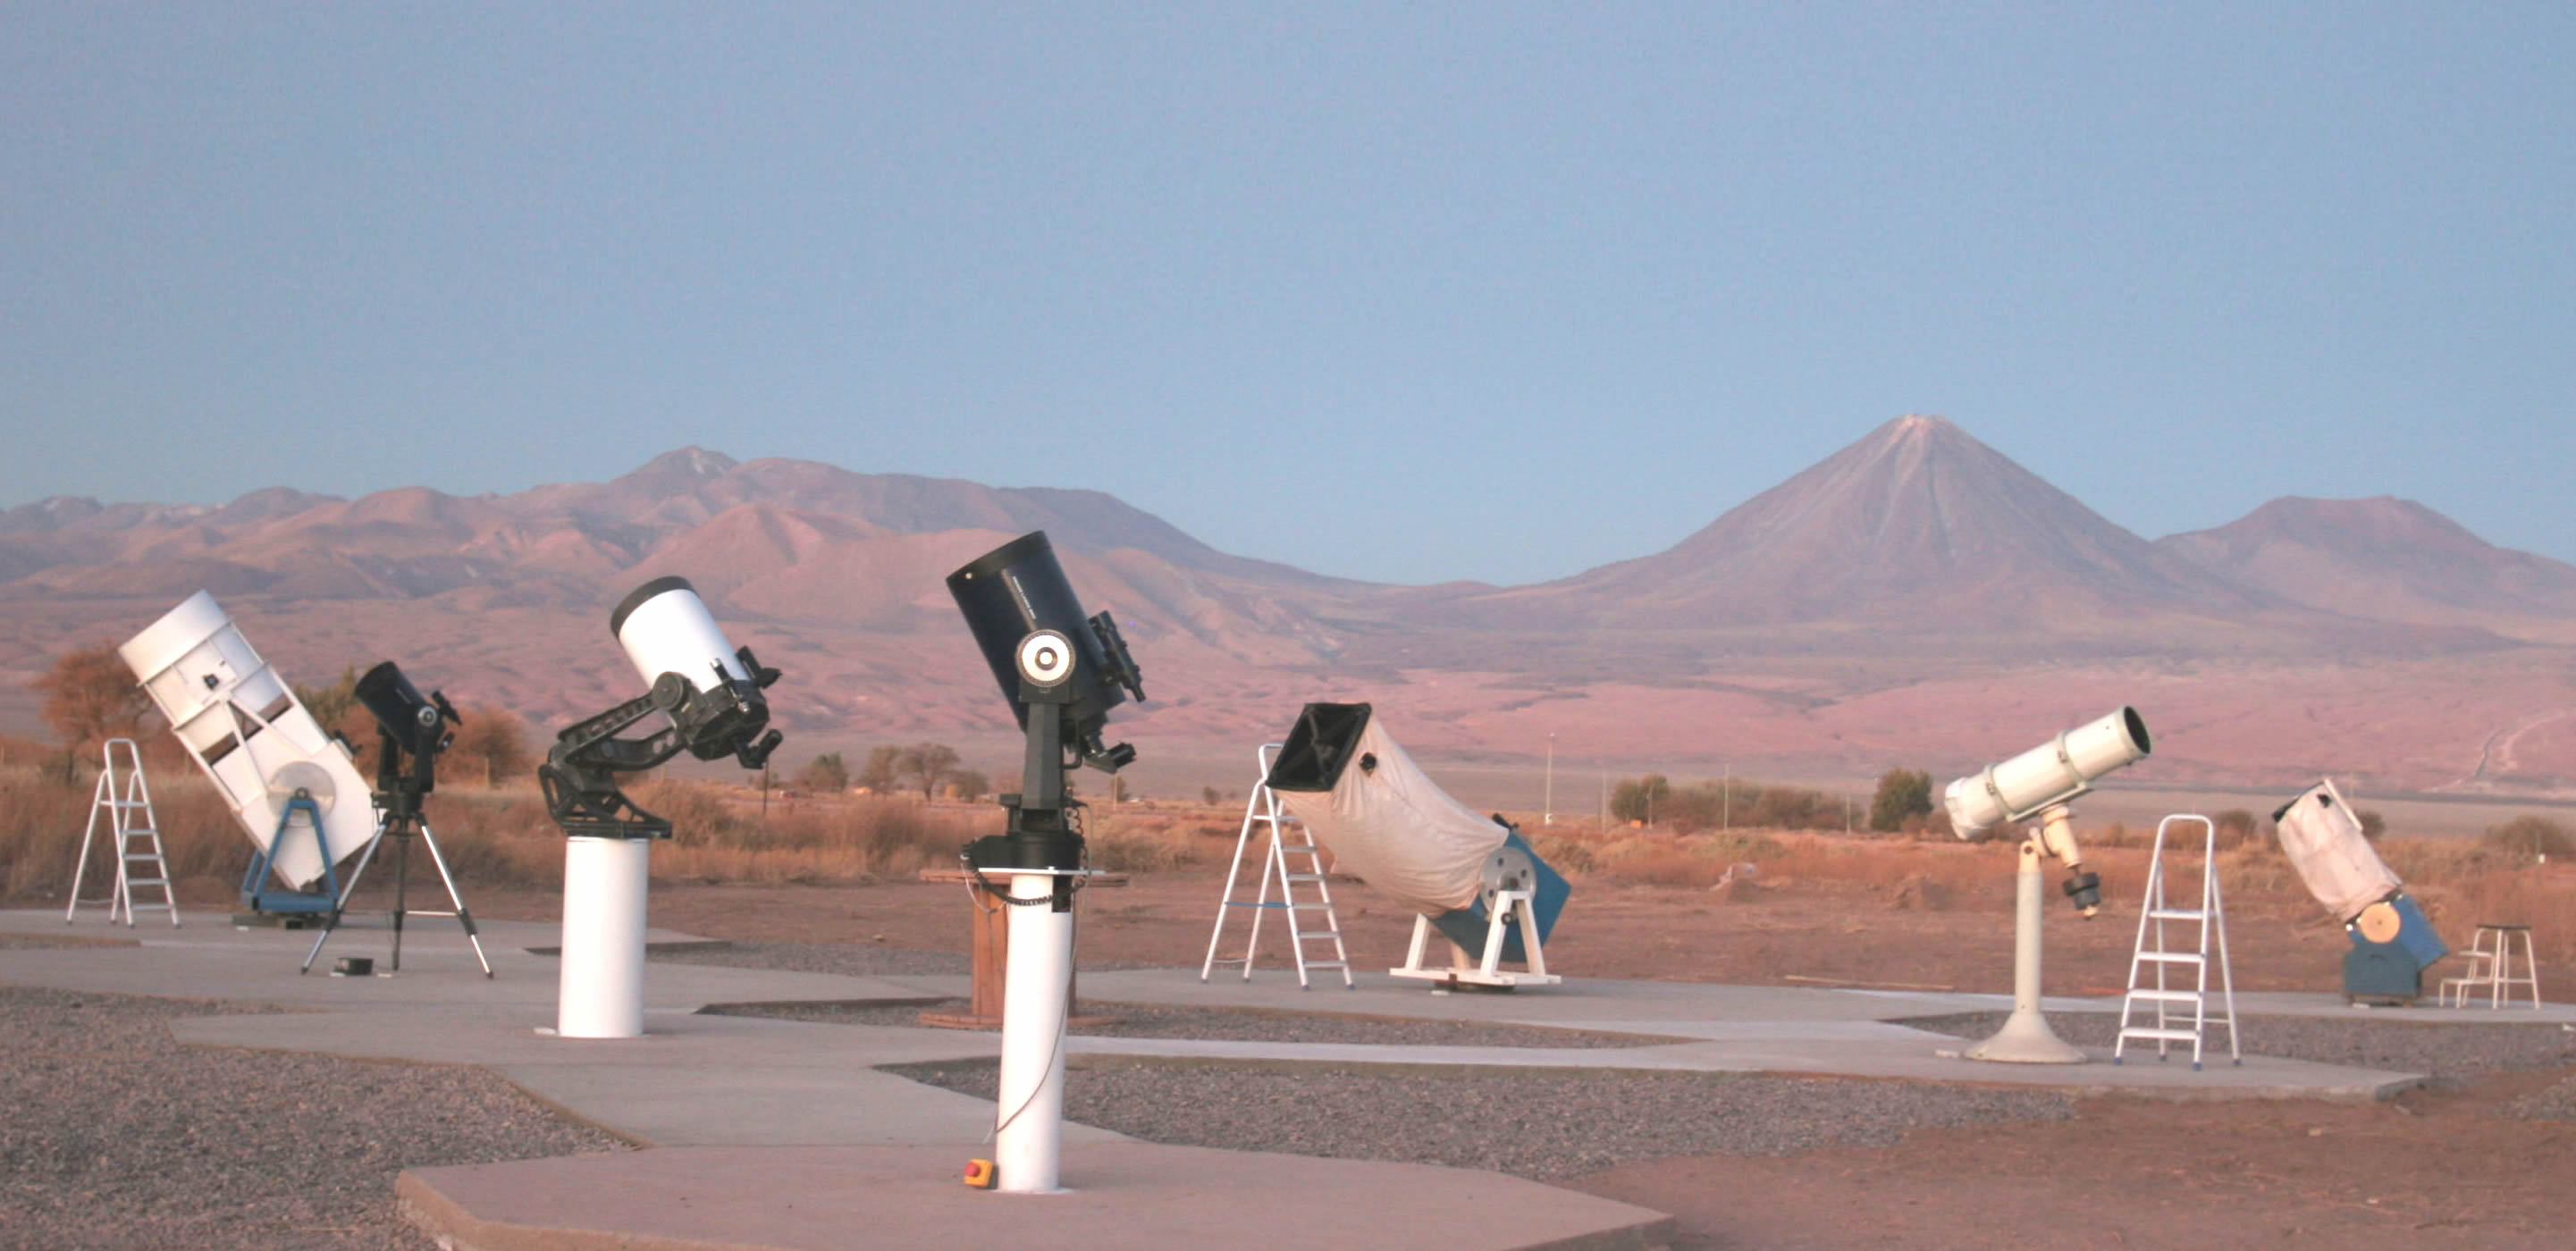 Location de télescopes